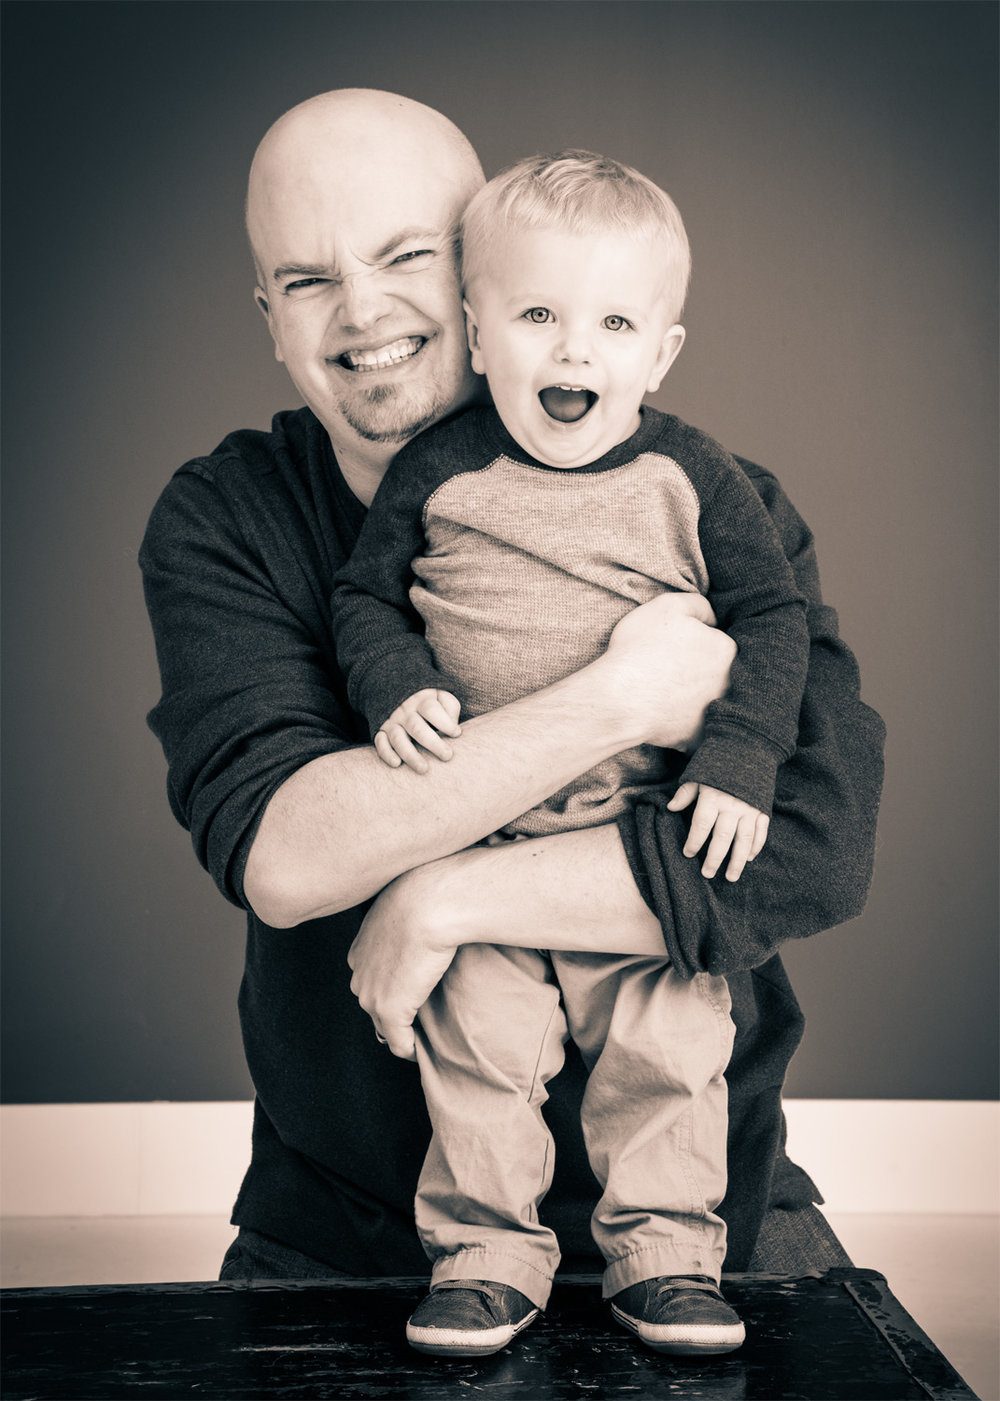 father-son-toddler-photo.jpg